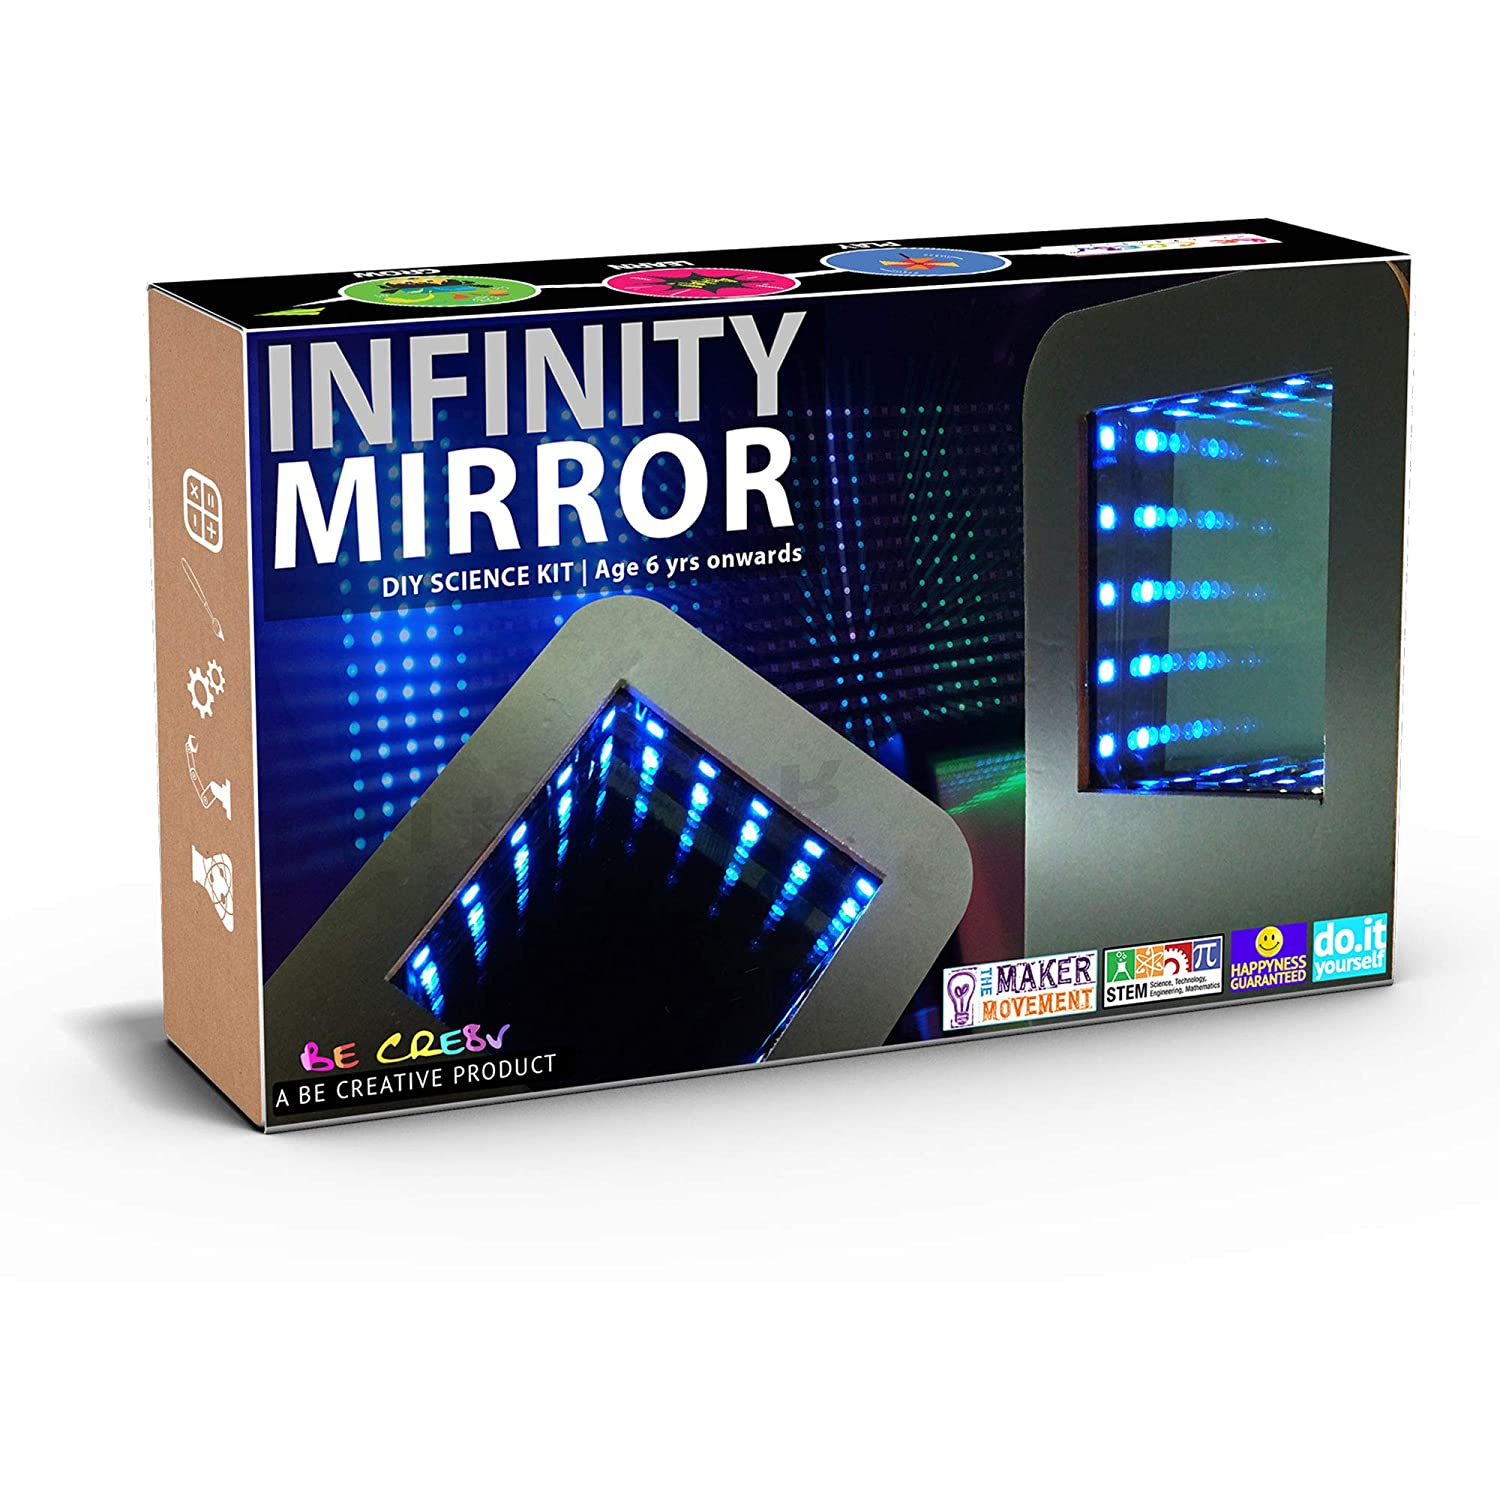 Buy Be Cre8v Led Based Infinity Mirror Diy Educational Electronic Kit Toy For Kids Over 6 Years Online At Low Prices In India Amazon In